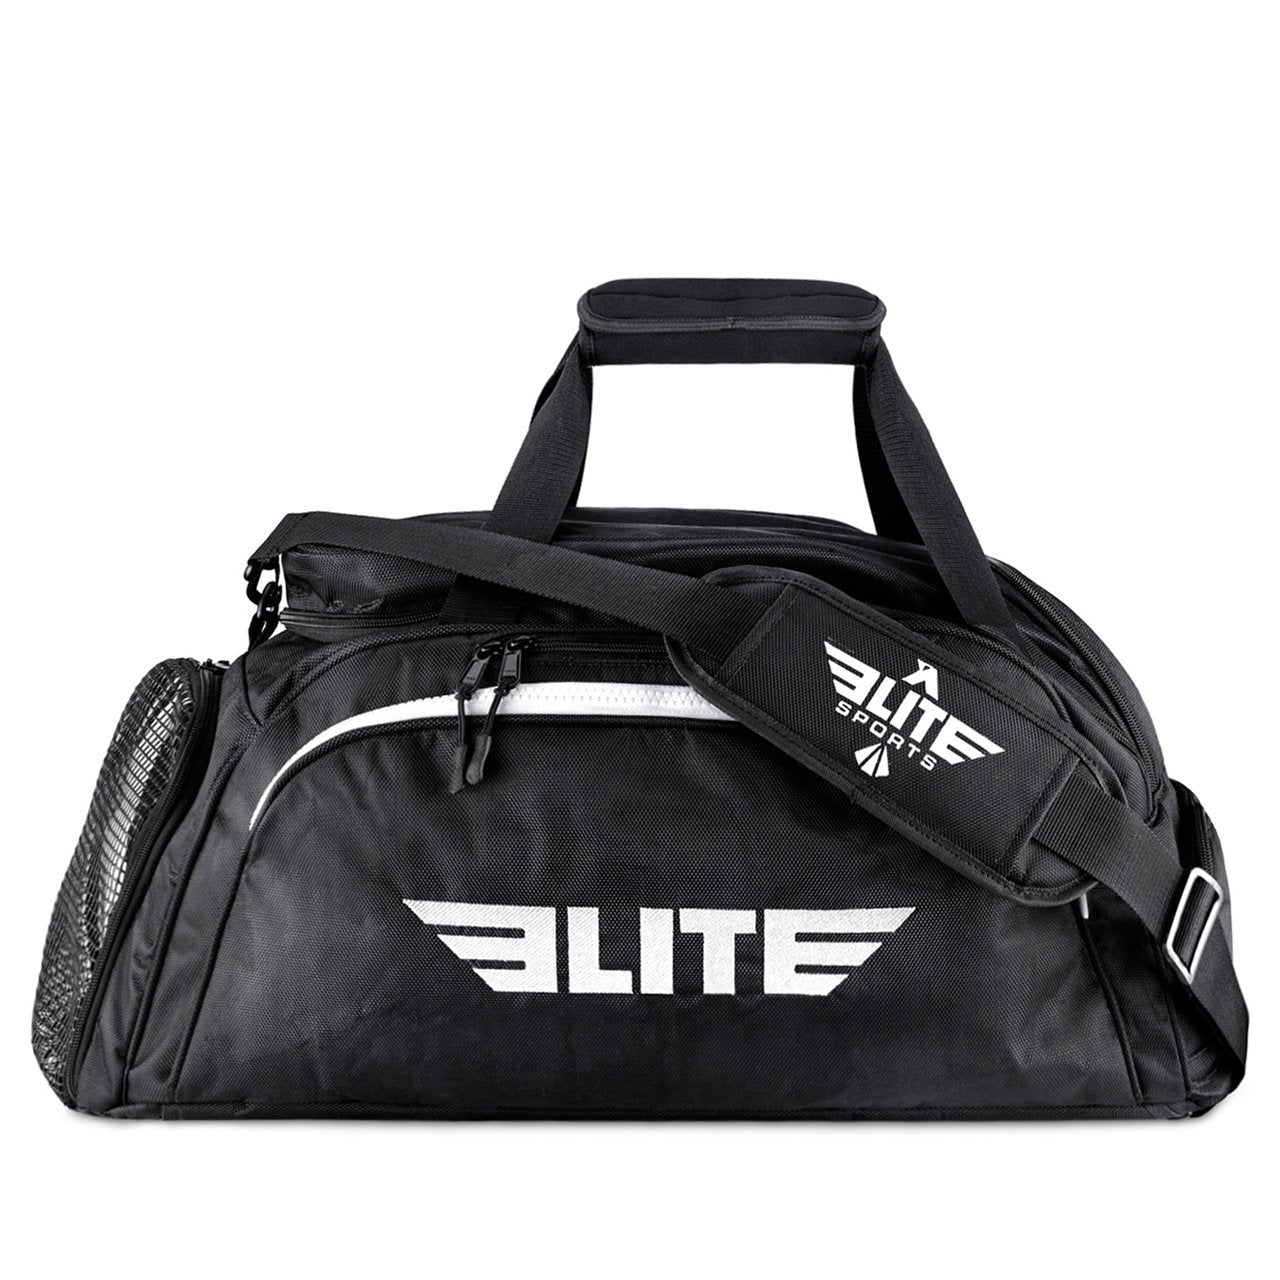 Elite Sports Warrior Series Large Boxing MMA BJJ Gear Gym Duffel Bag & Backpack